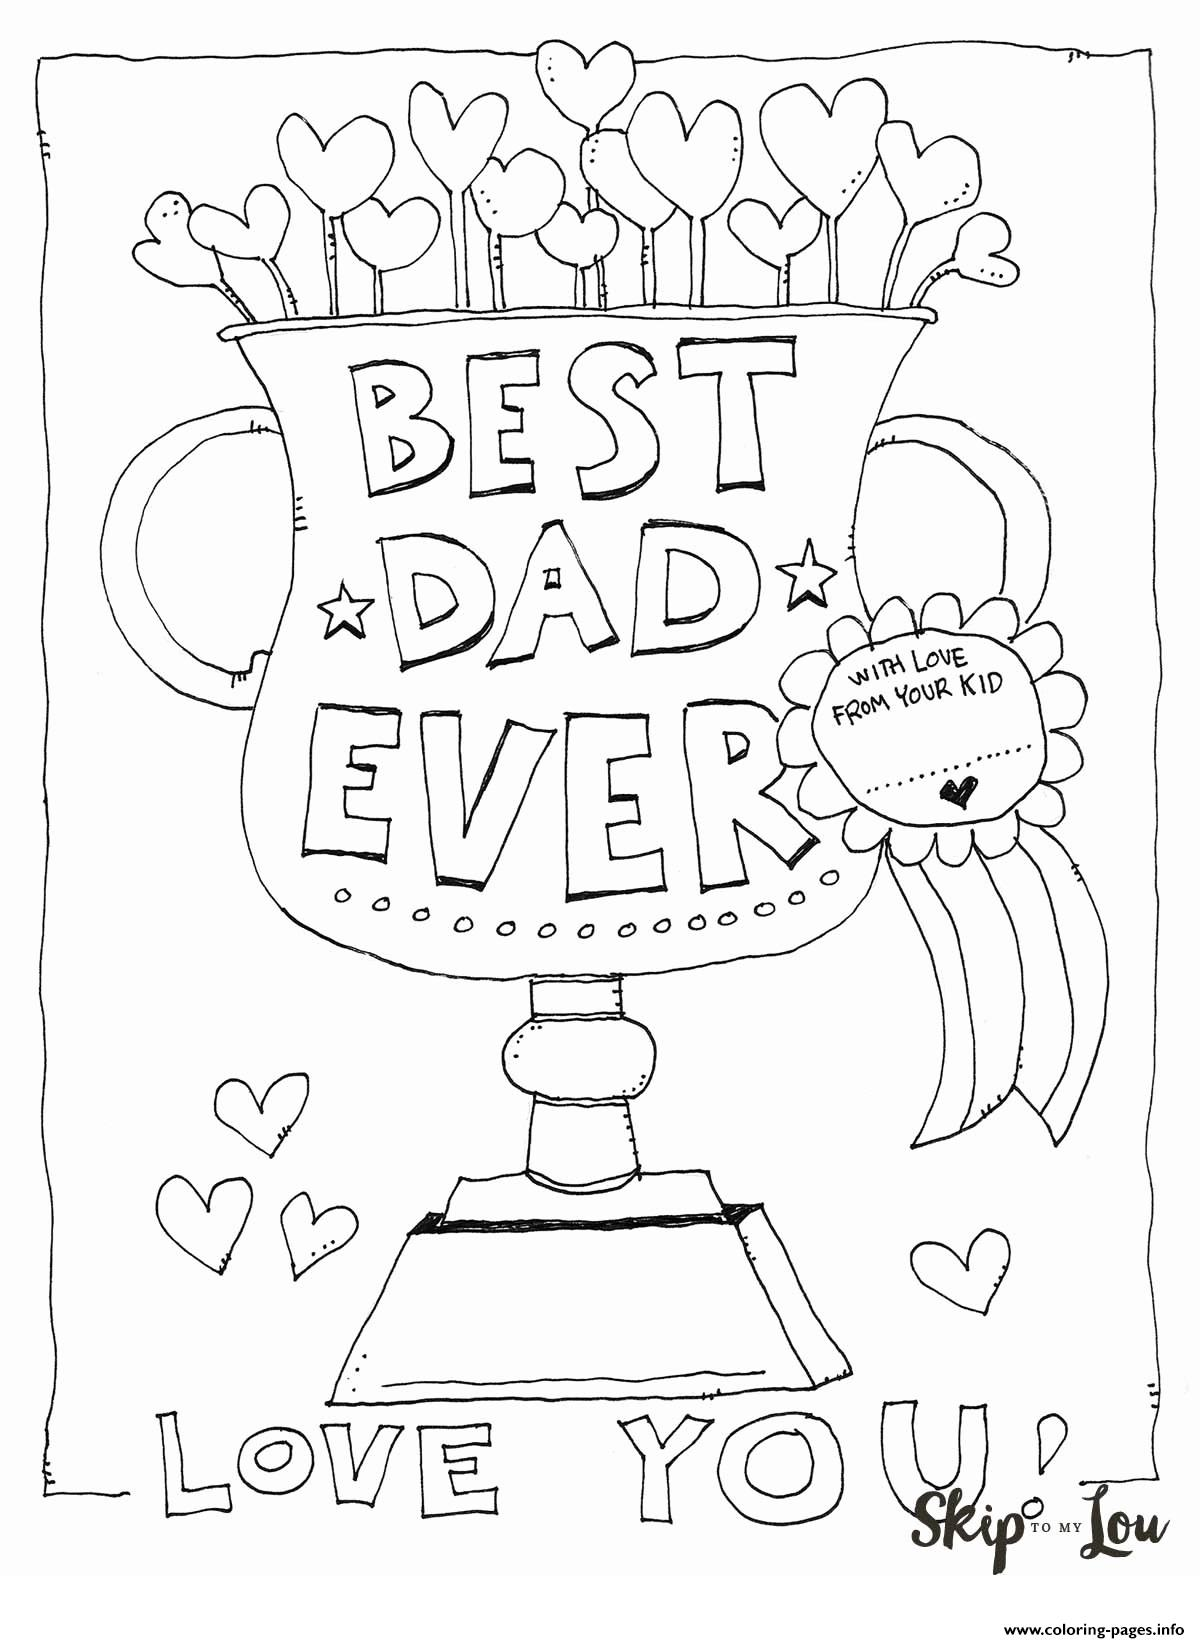 Best Dad Ever Love You Fathers Day Coloring Pages Printable